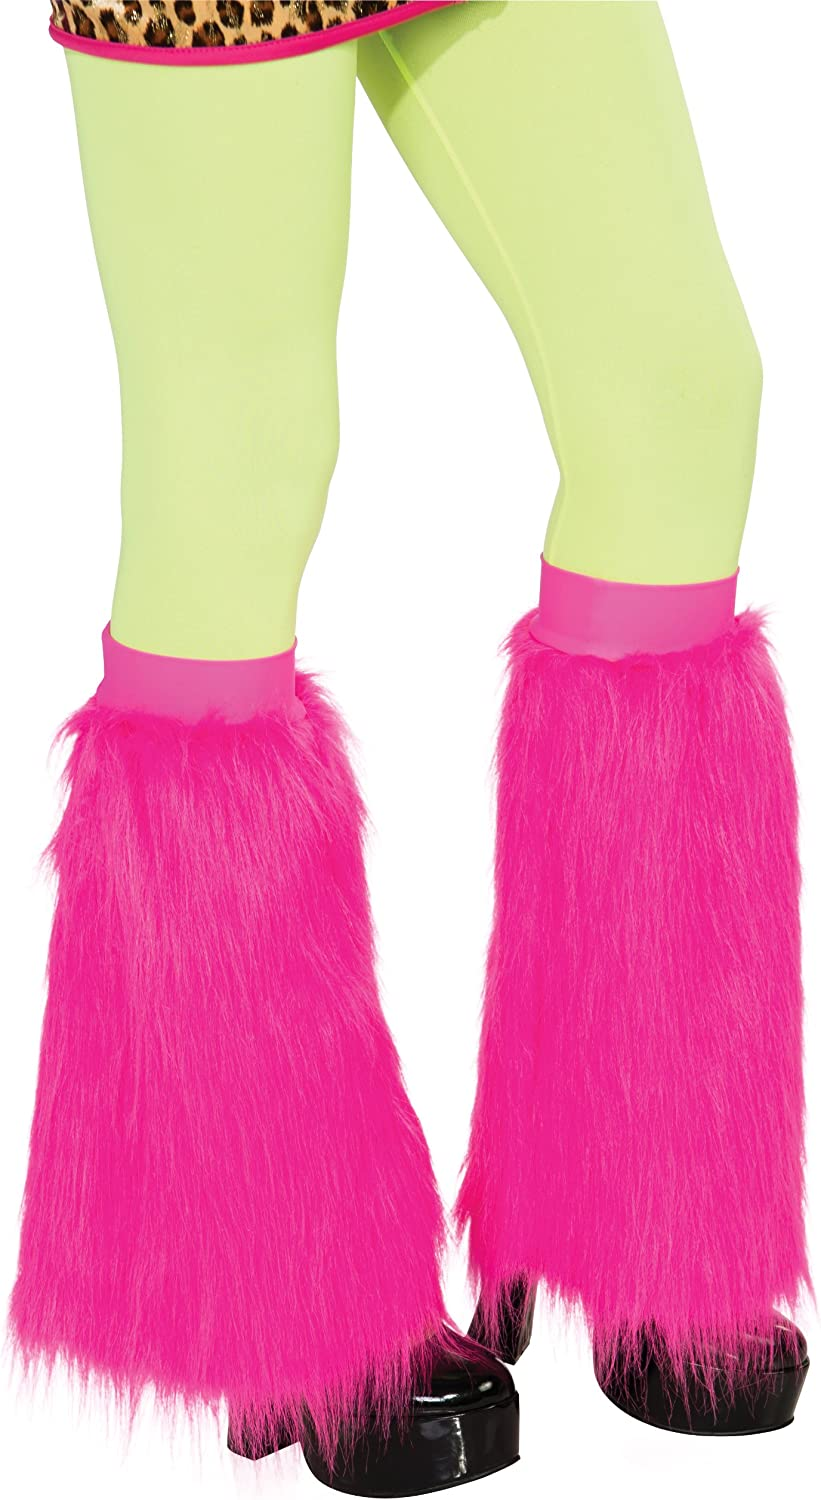 Rubie's Fluffies Faux Furry Leg Easy-to-use Indefinitely Warmers Size Pink One